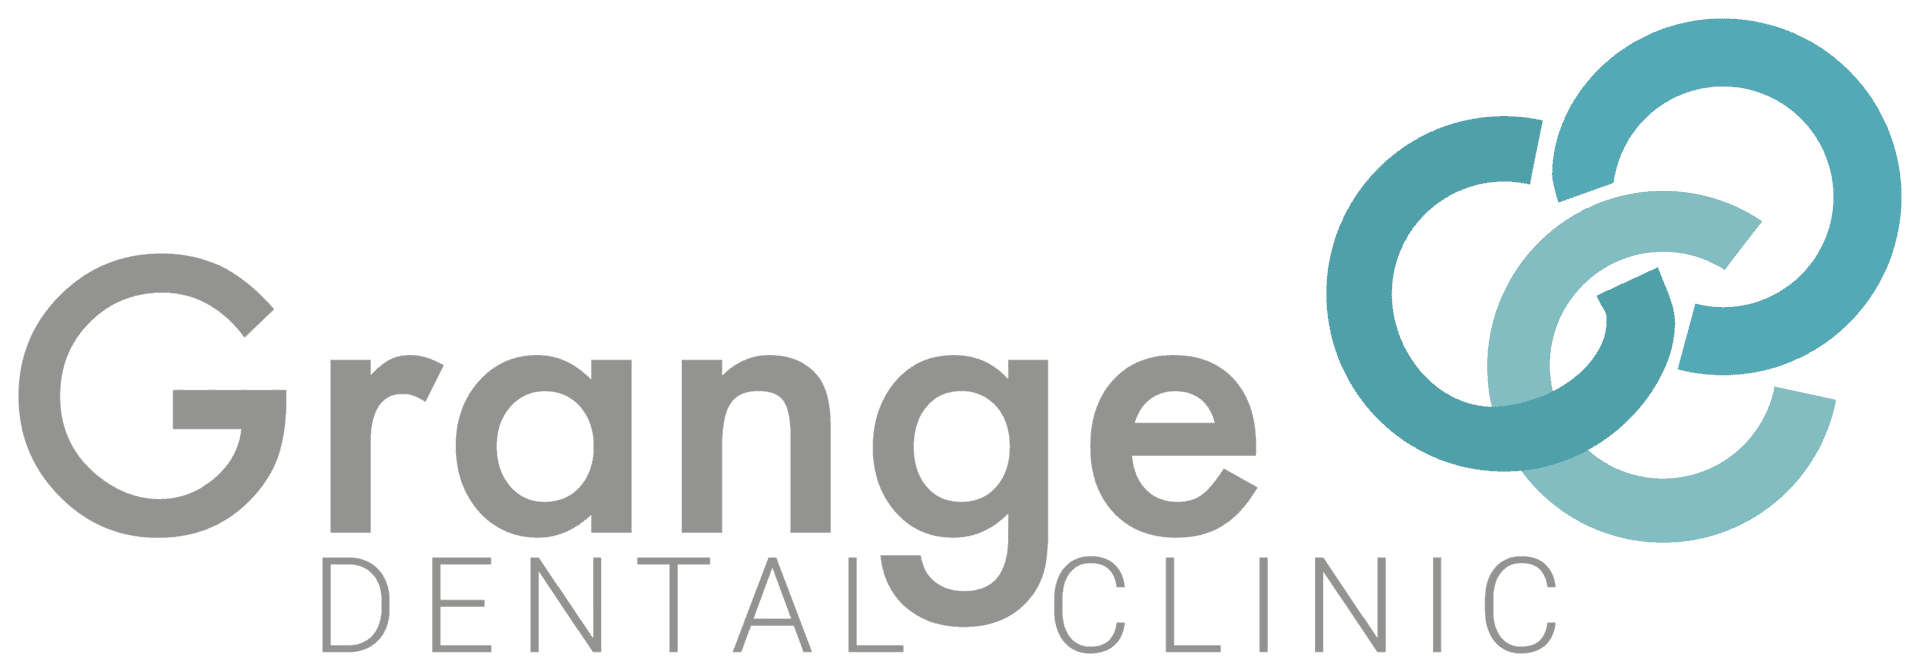 grange dental clinic logo